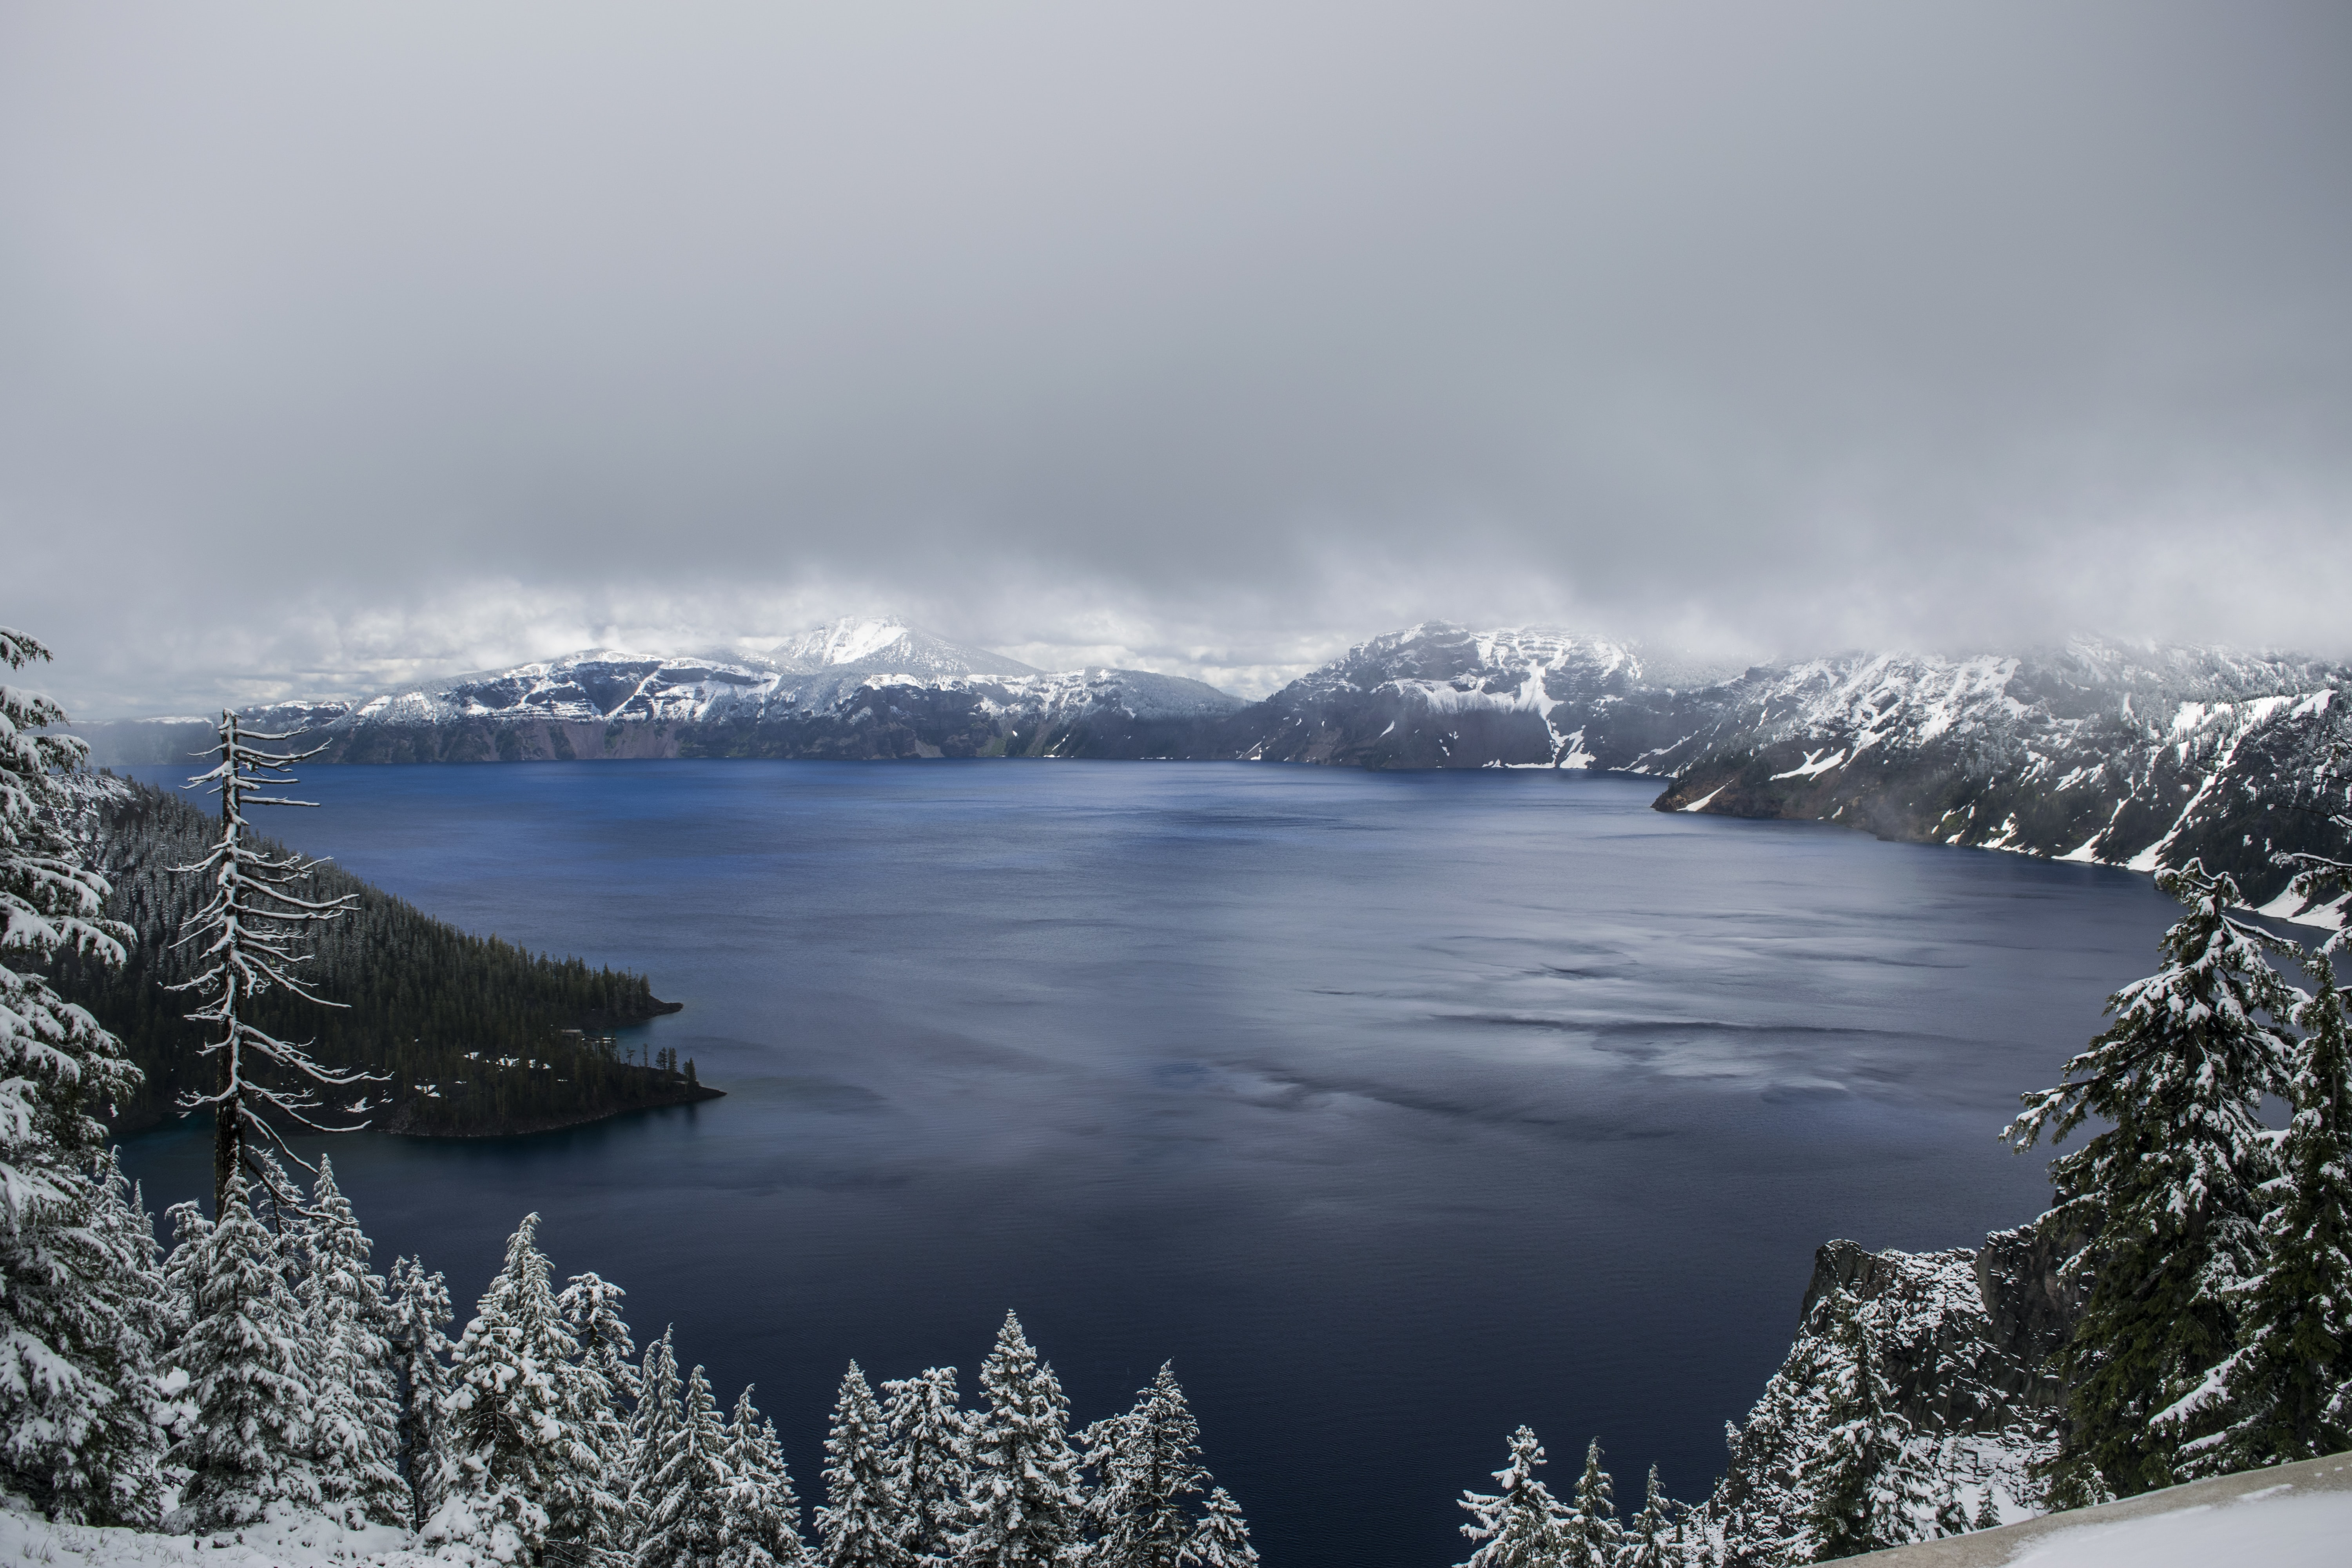 Crater Lake with a frozen shoreline of trees under thick gray fog and clouds